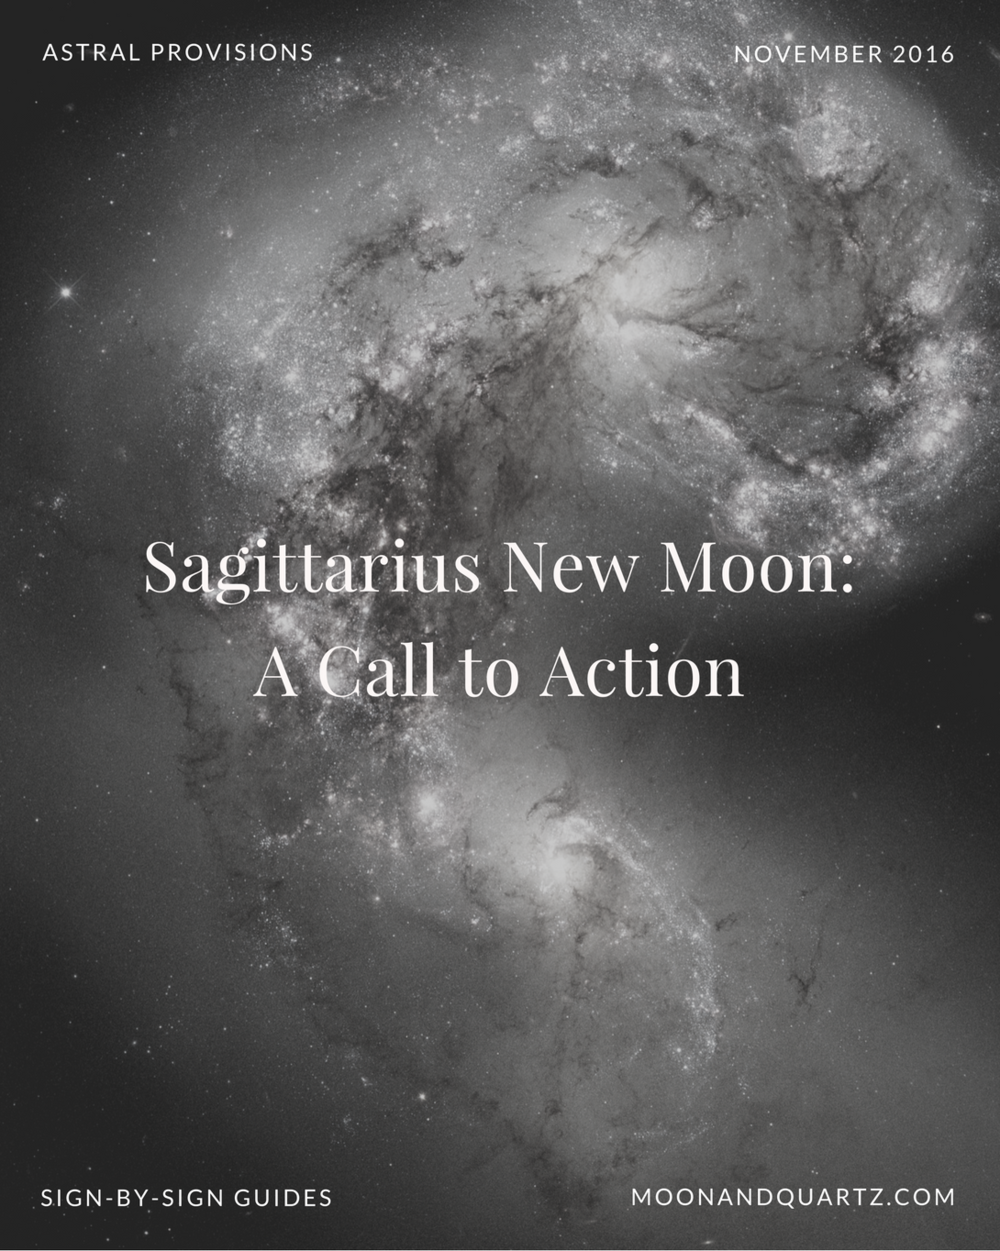 The New Moon in Sagittarius, exact at 4:18am Tuesday, presents an opportunity to expand our understanding of what's possible through our exposure to and incorporation of the new. The Moon Guides are available now (and free to subscribers!) with guidance for each of the twelve signs as well as a fresh new ritual I'm hoping you'll join in with me over the next few months. Click through to download and read more about the Sagittarius New Moon.